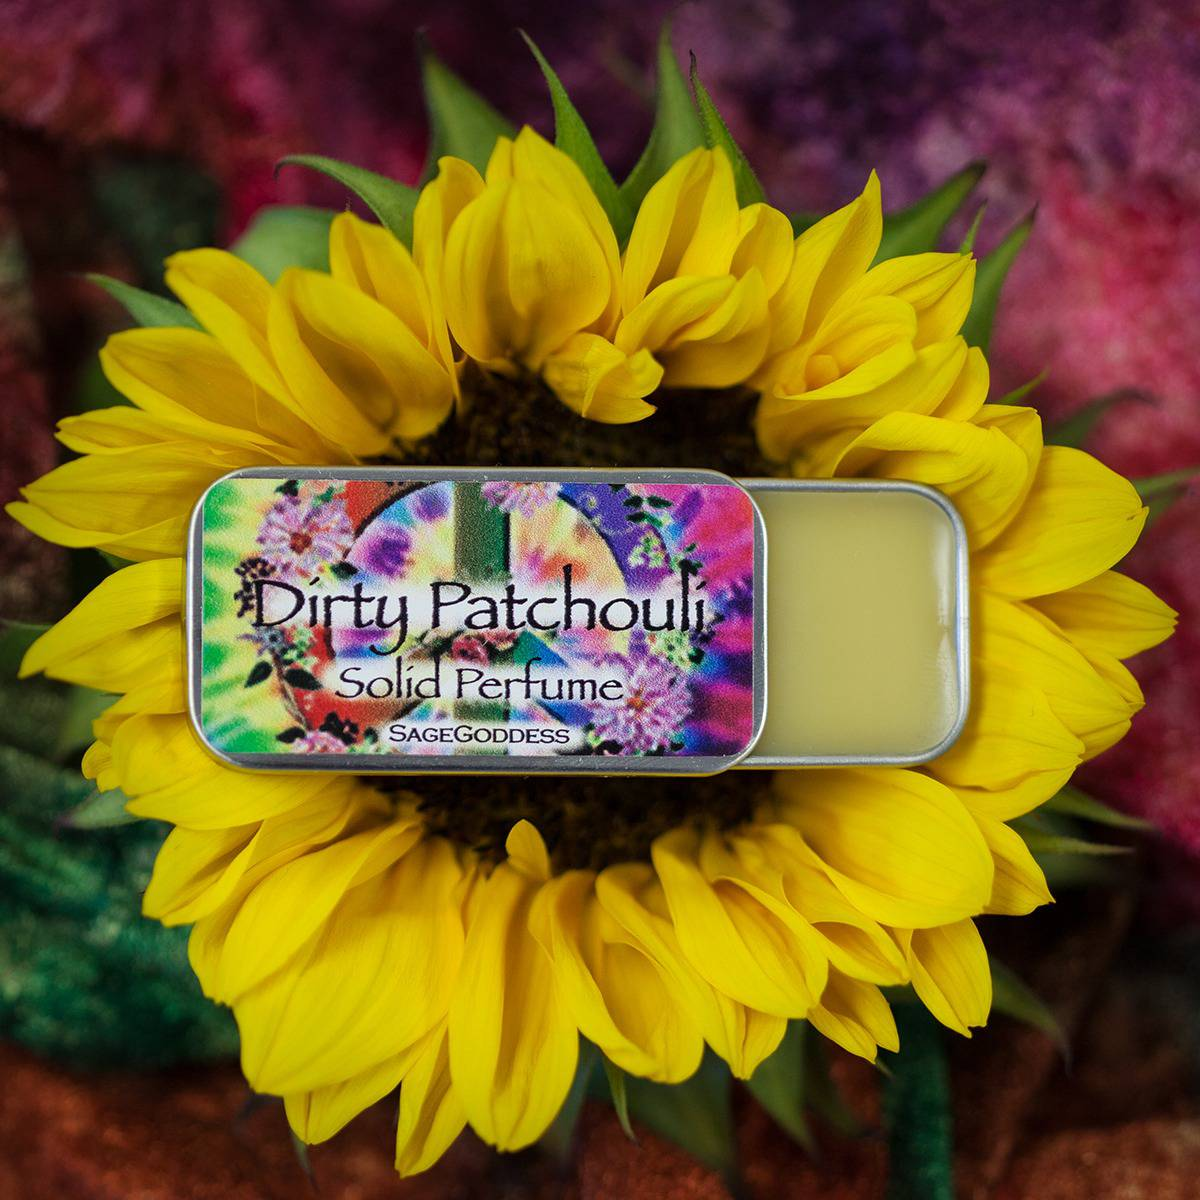 Dirty Patchouli Solid Perfume 2_19